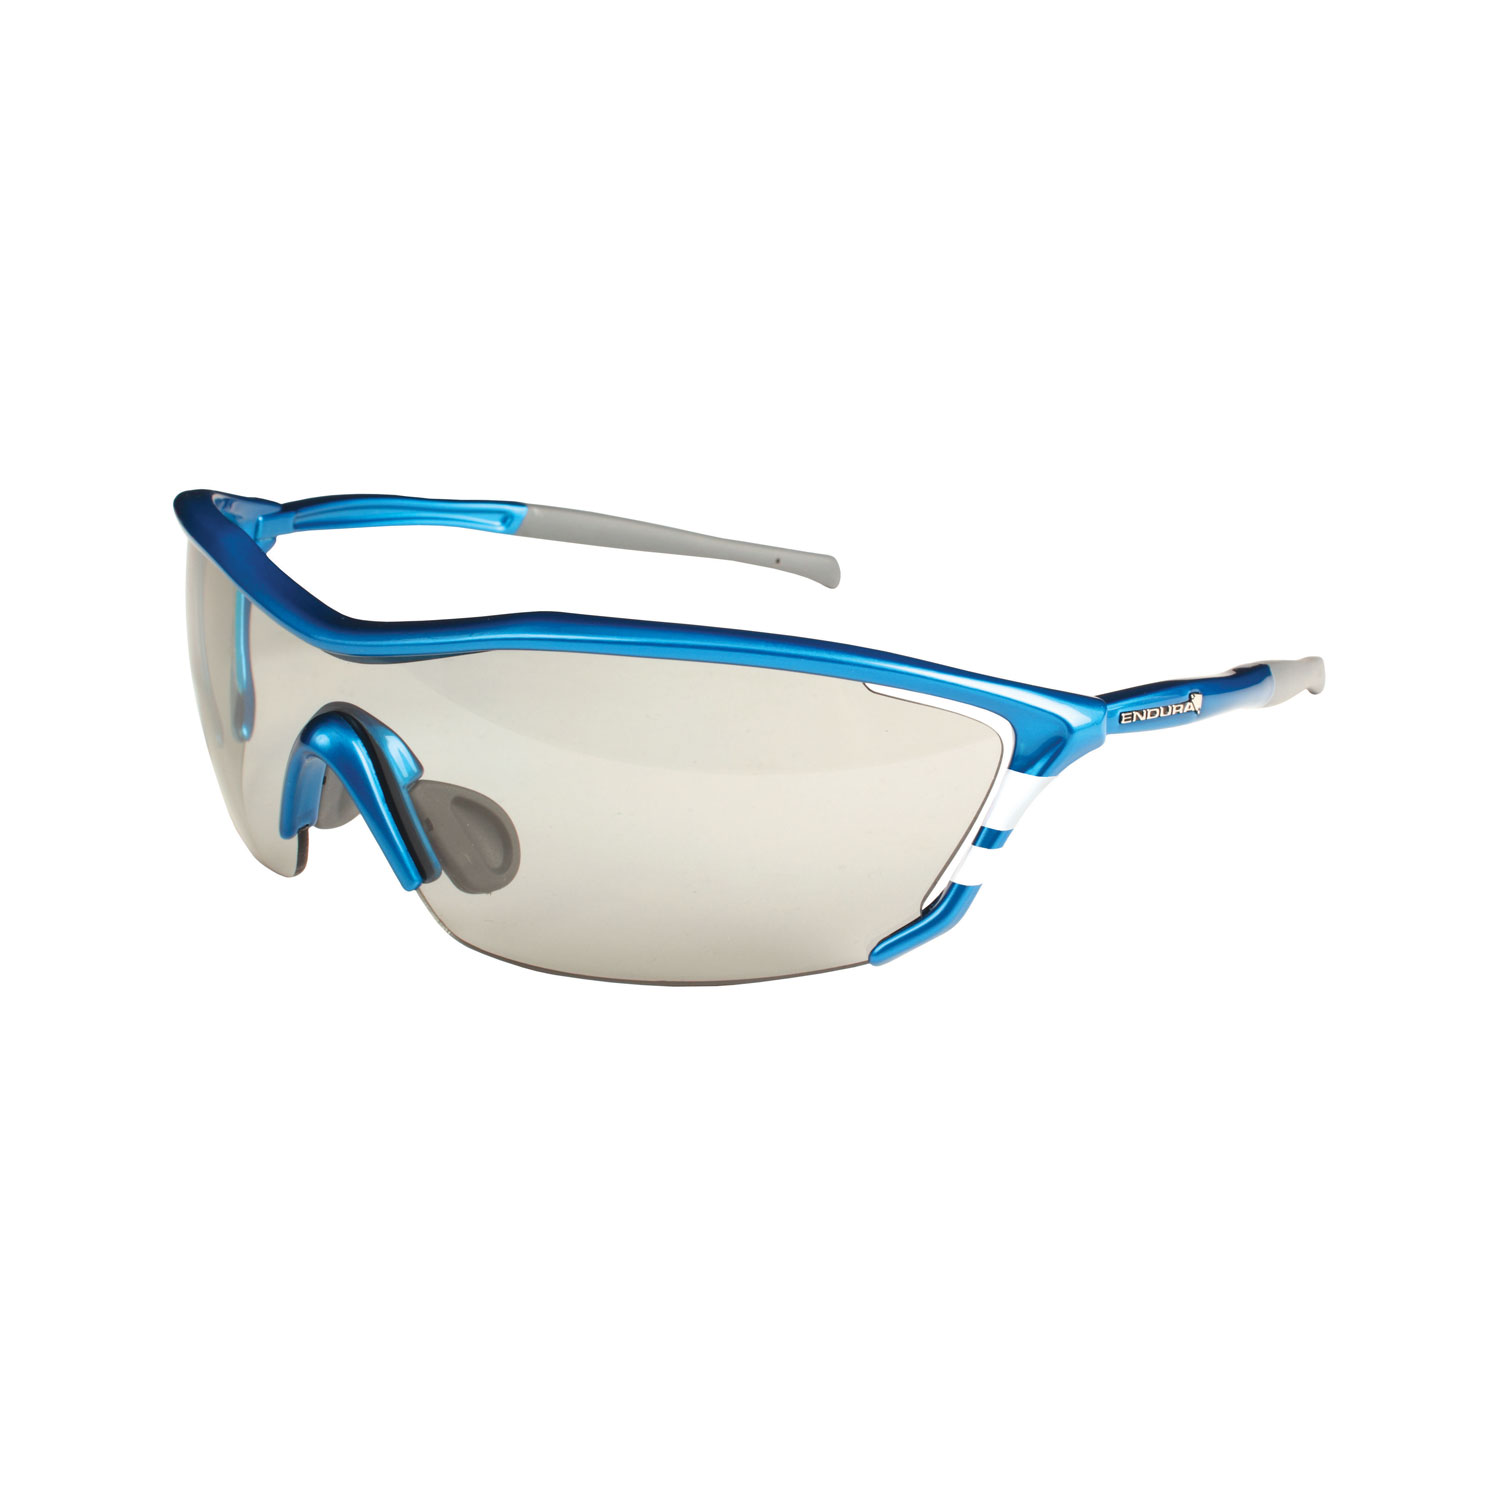 Pacu Glasses Blue